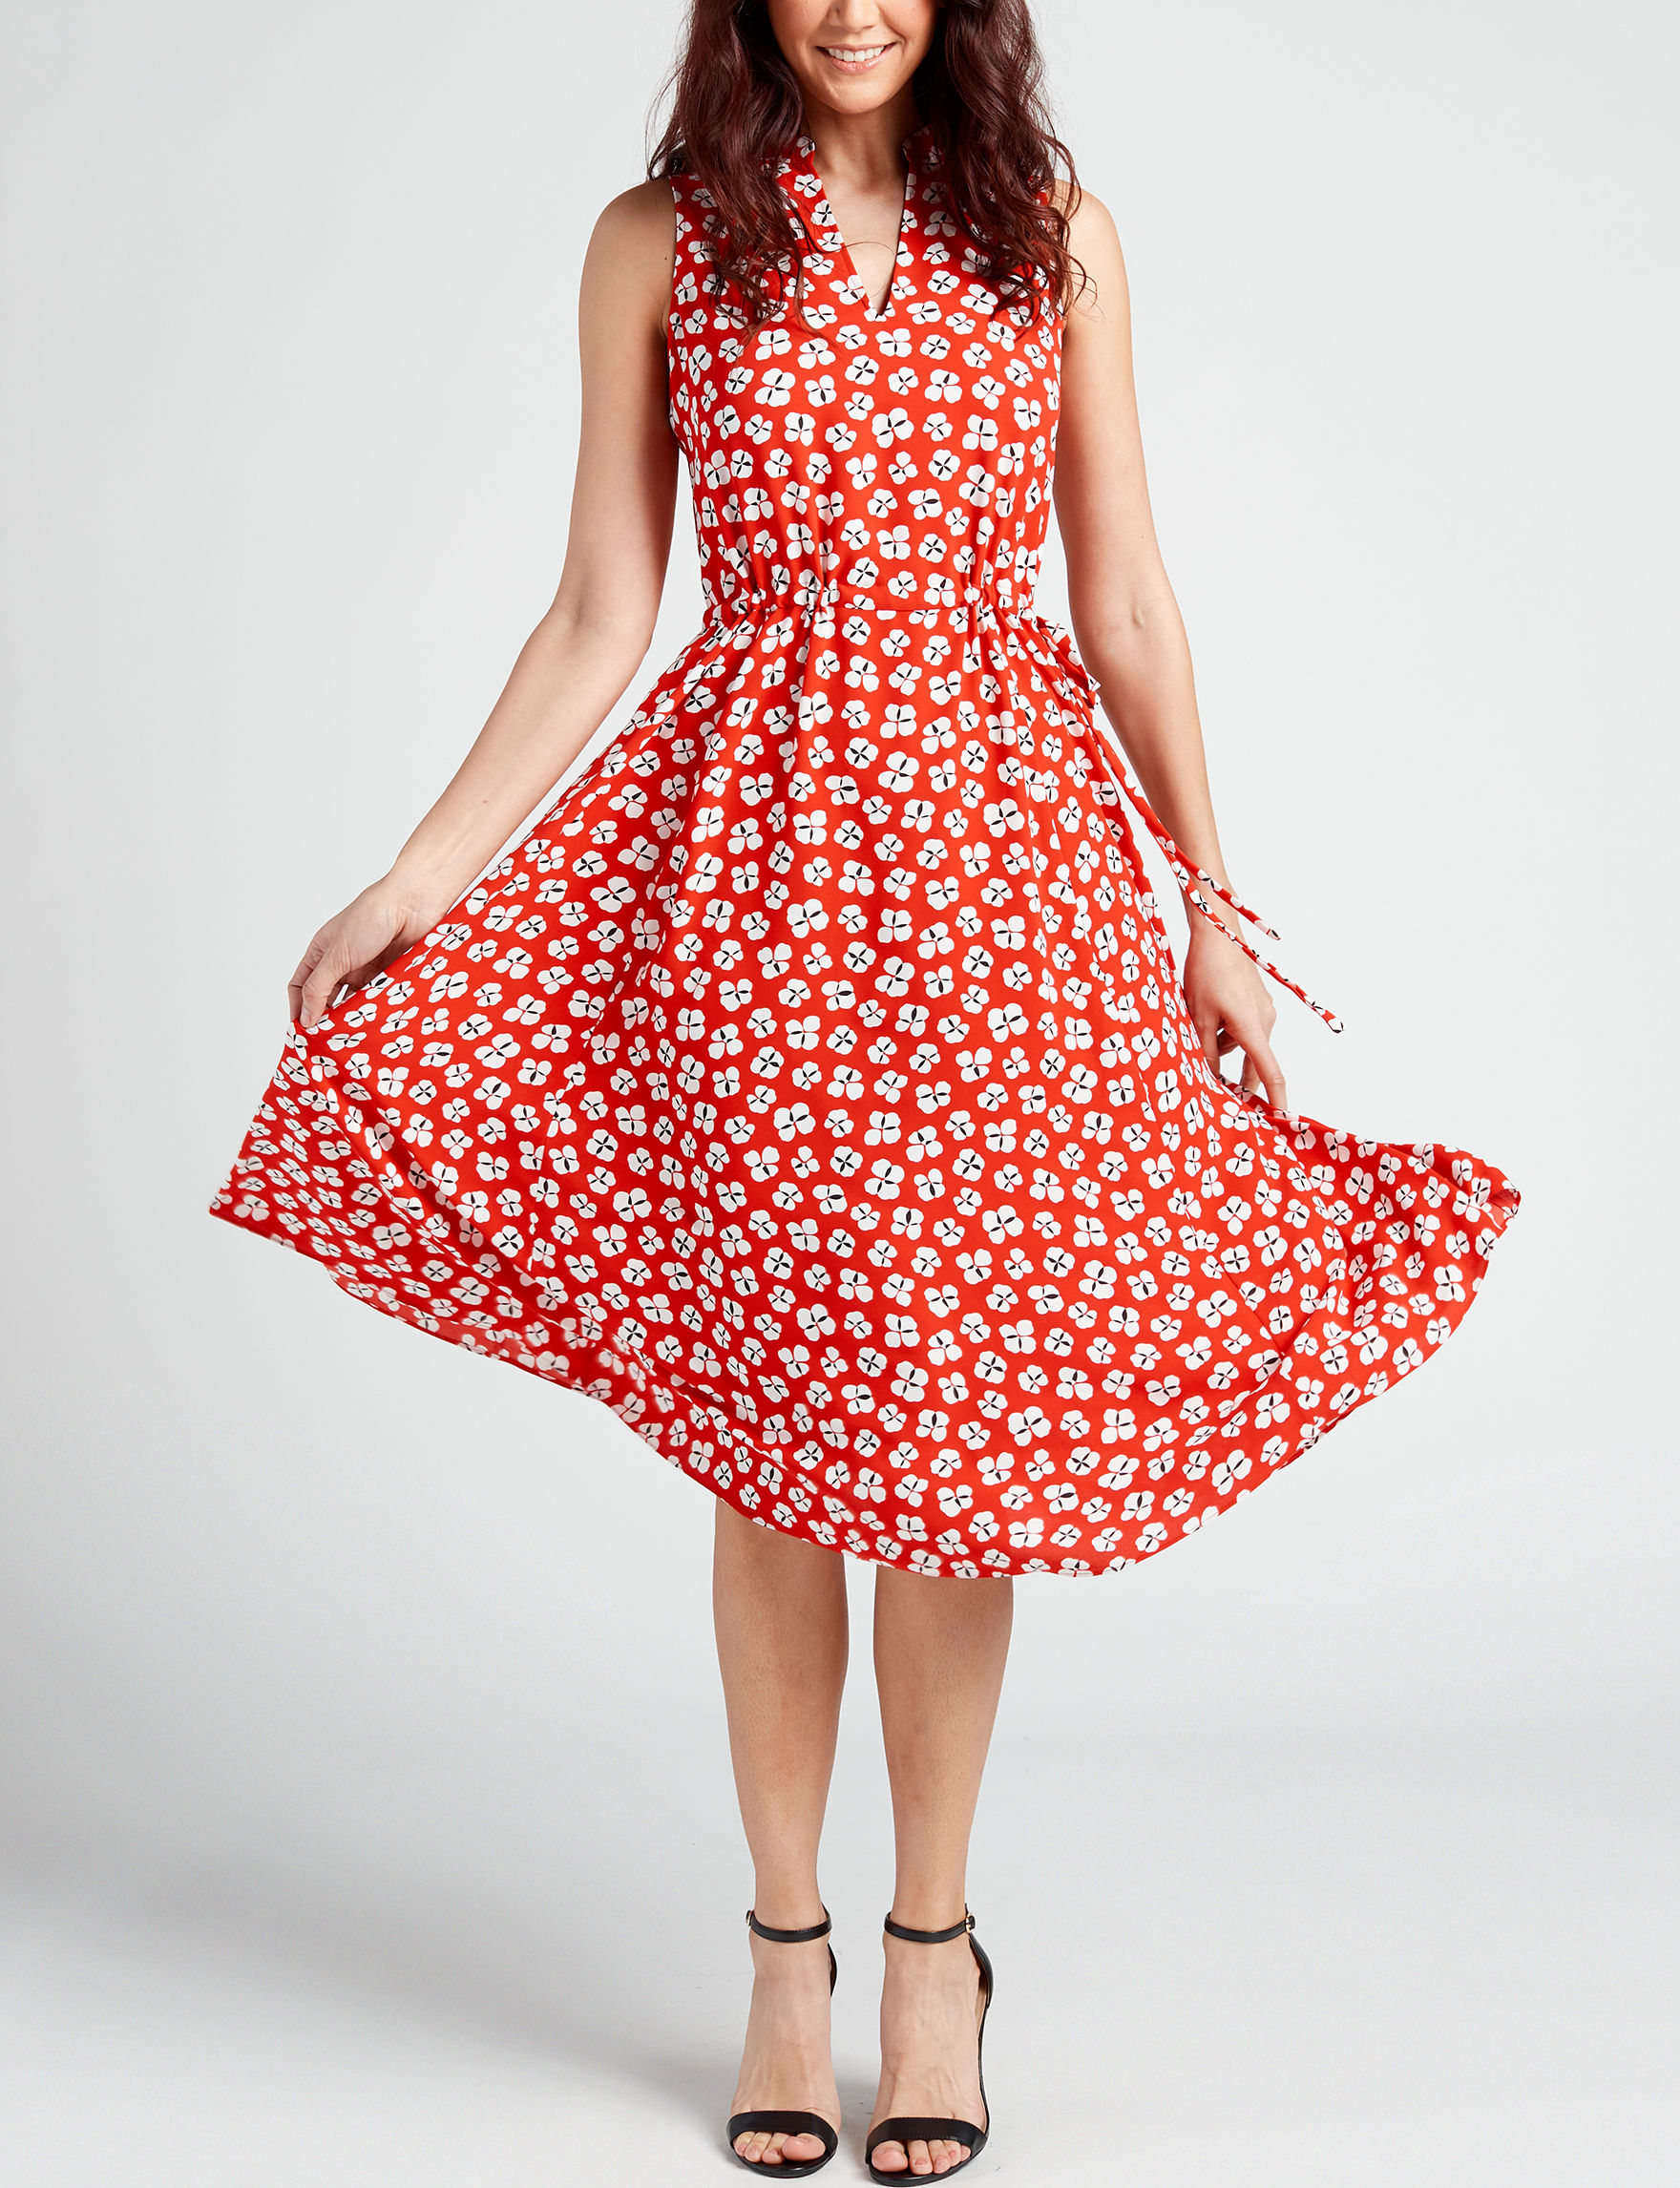 Anne Klein Red / White Everyday & Casual Fit & Flare Dresses